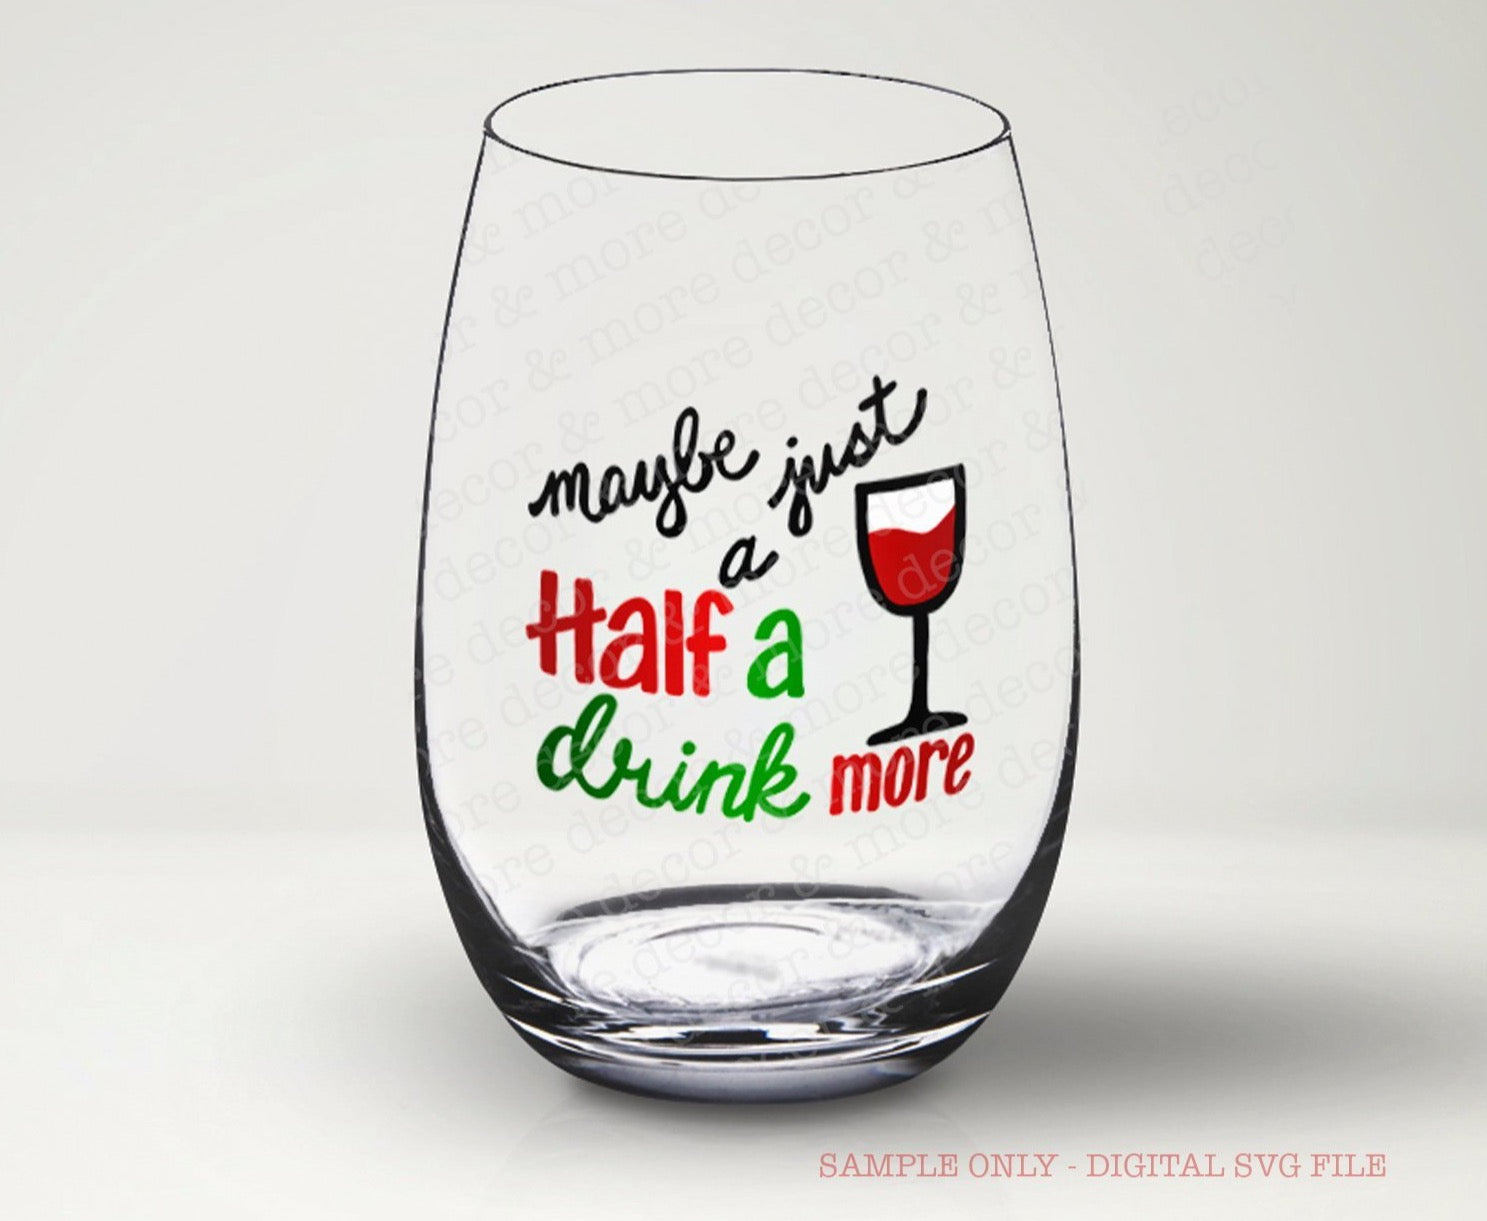 Christmas Wine Glass SVG File, Funny Christmas Wine Glass Saying, Christmas Wine Glass Decal, SVG Files for Cricut, Half a Glass More SVG